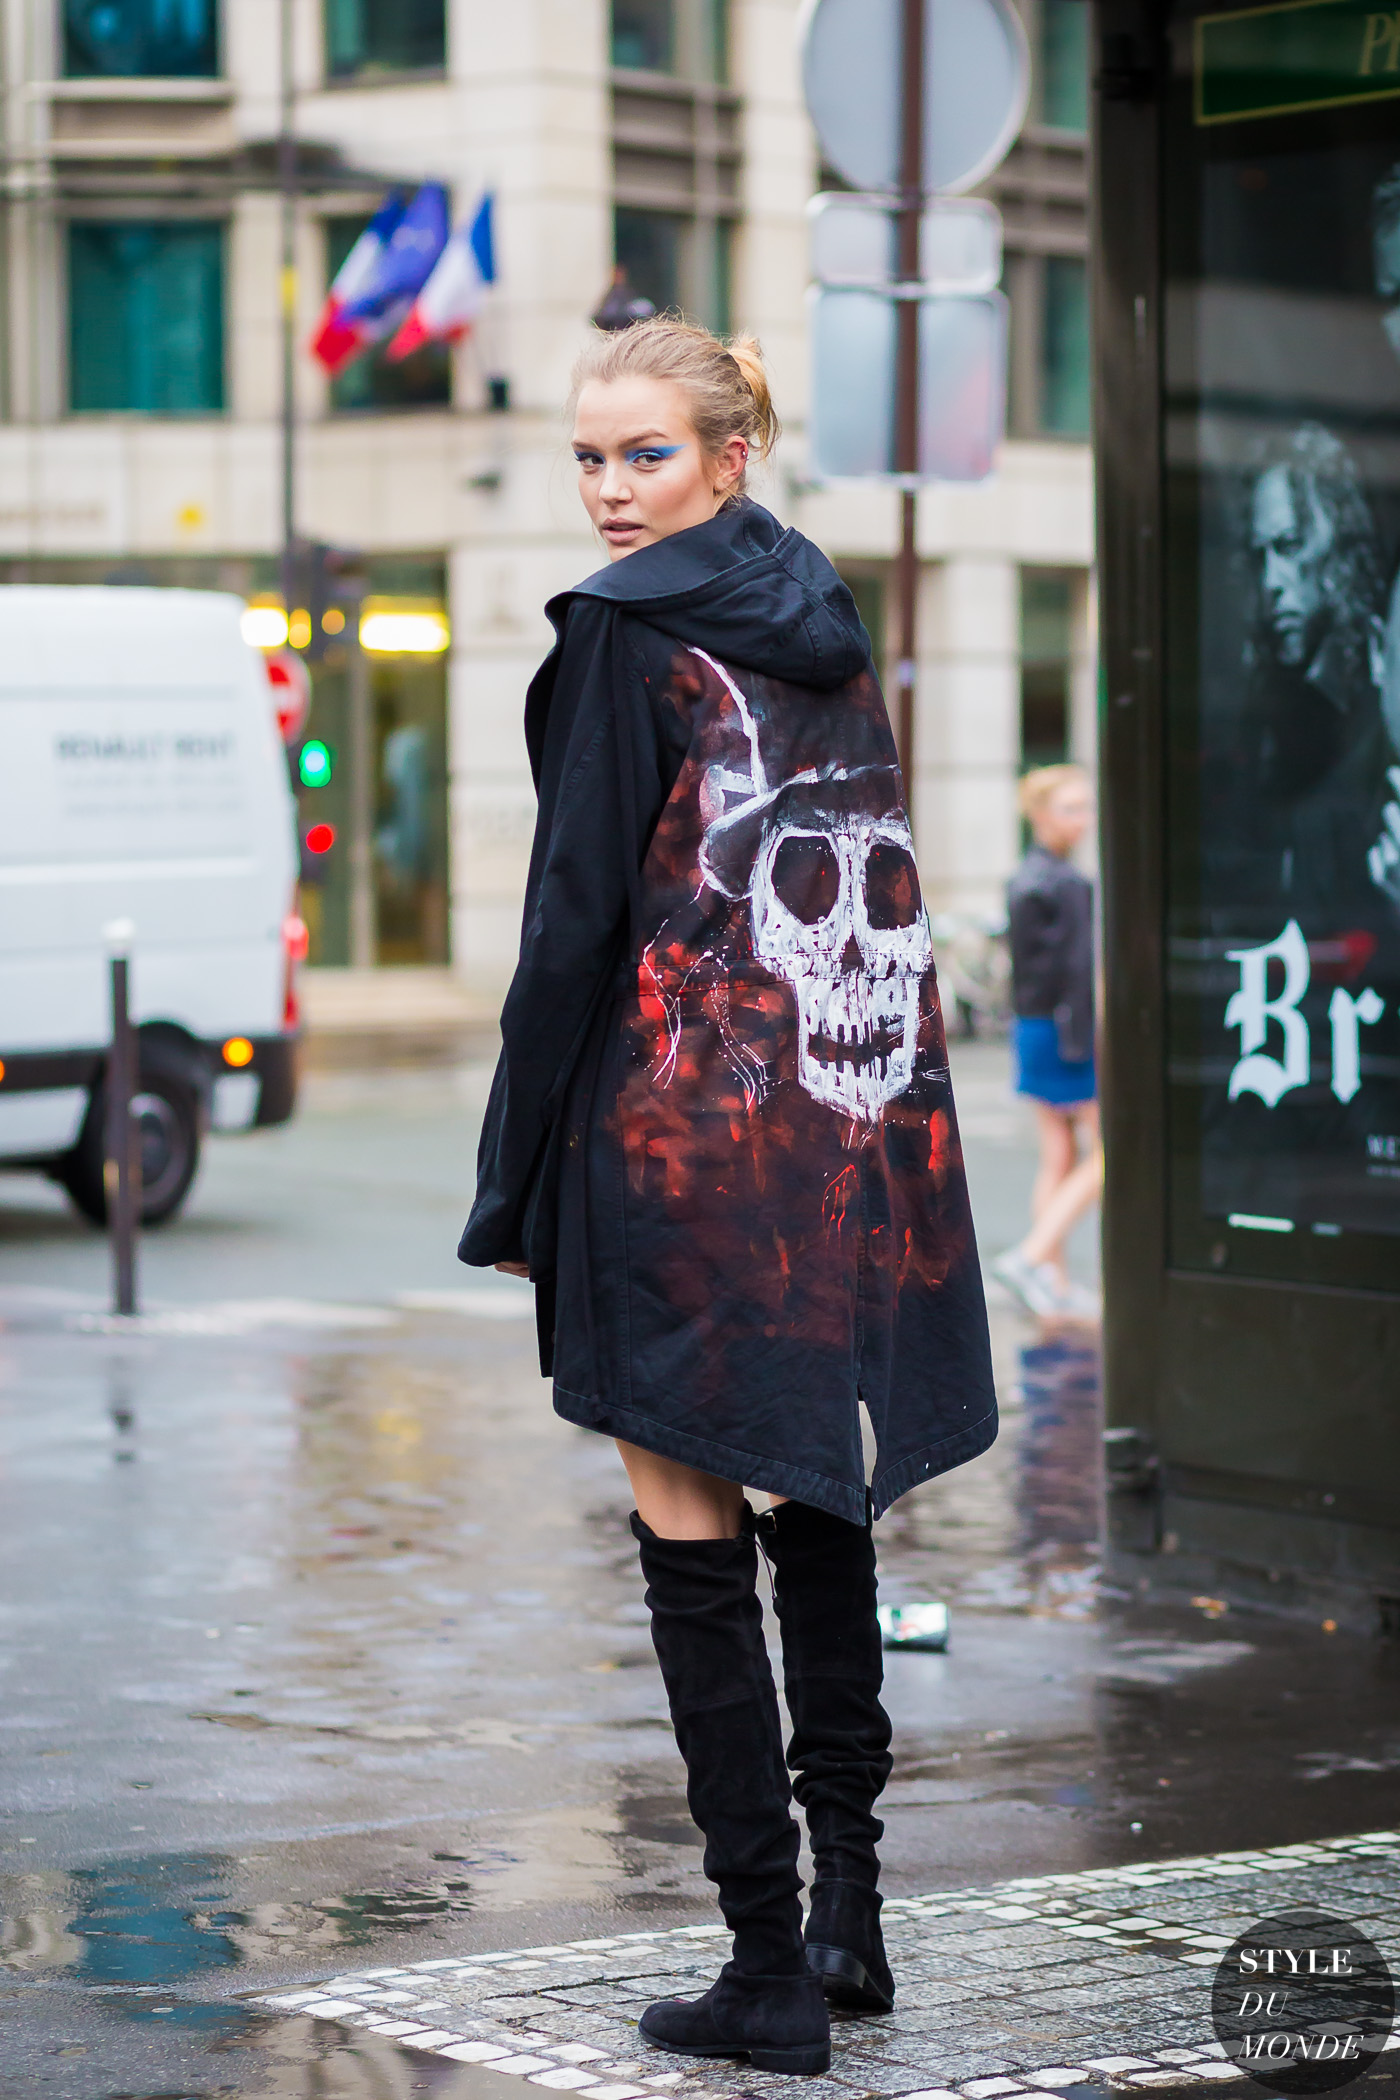 Josephine Skriver Street Style Street Fashion Streetsnaps by STYLEDUMONDE Street Style Fashion Photography